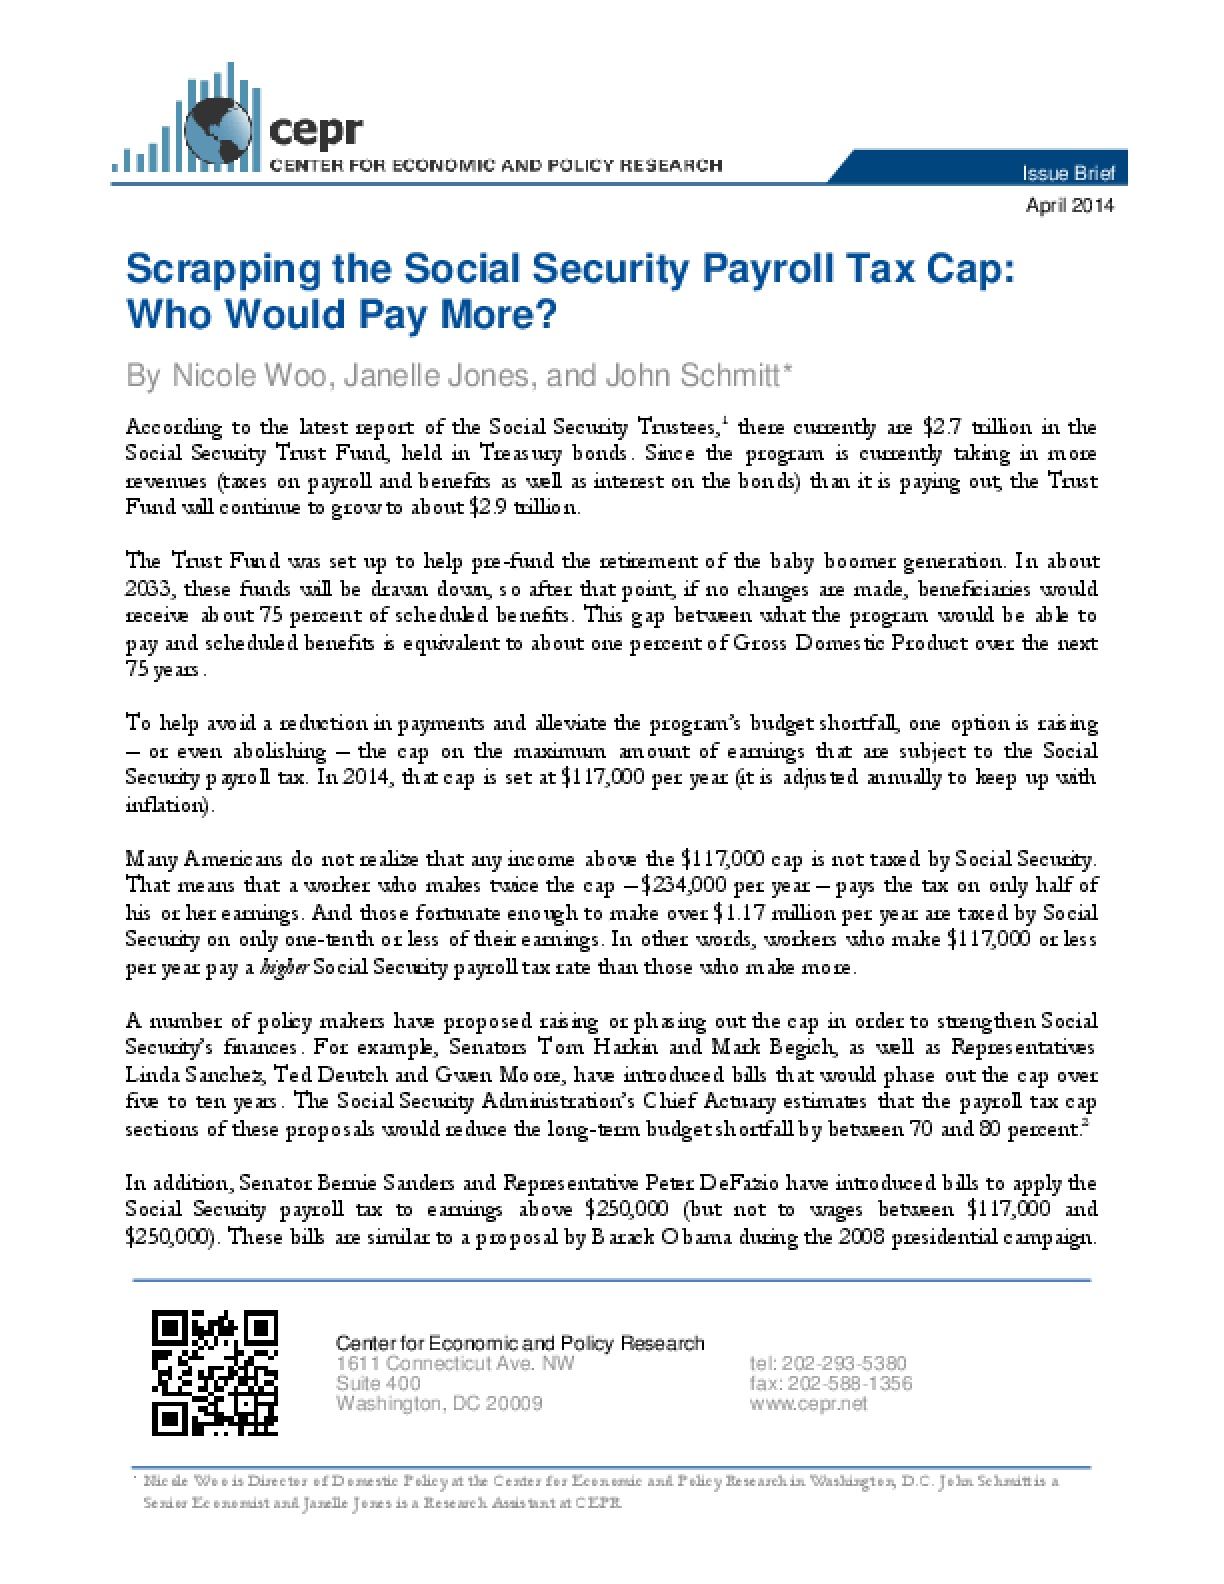 Scrapping the Social Security Payroll Tax Cap: Who Would Pay More?